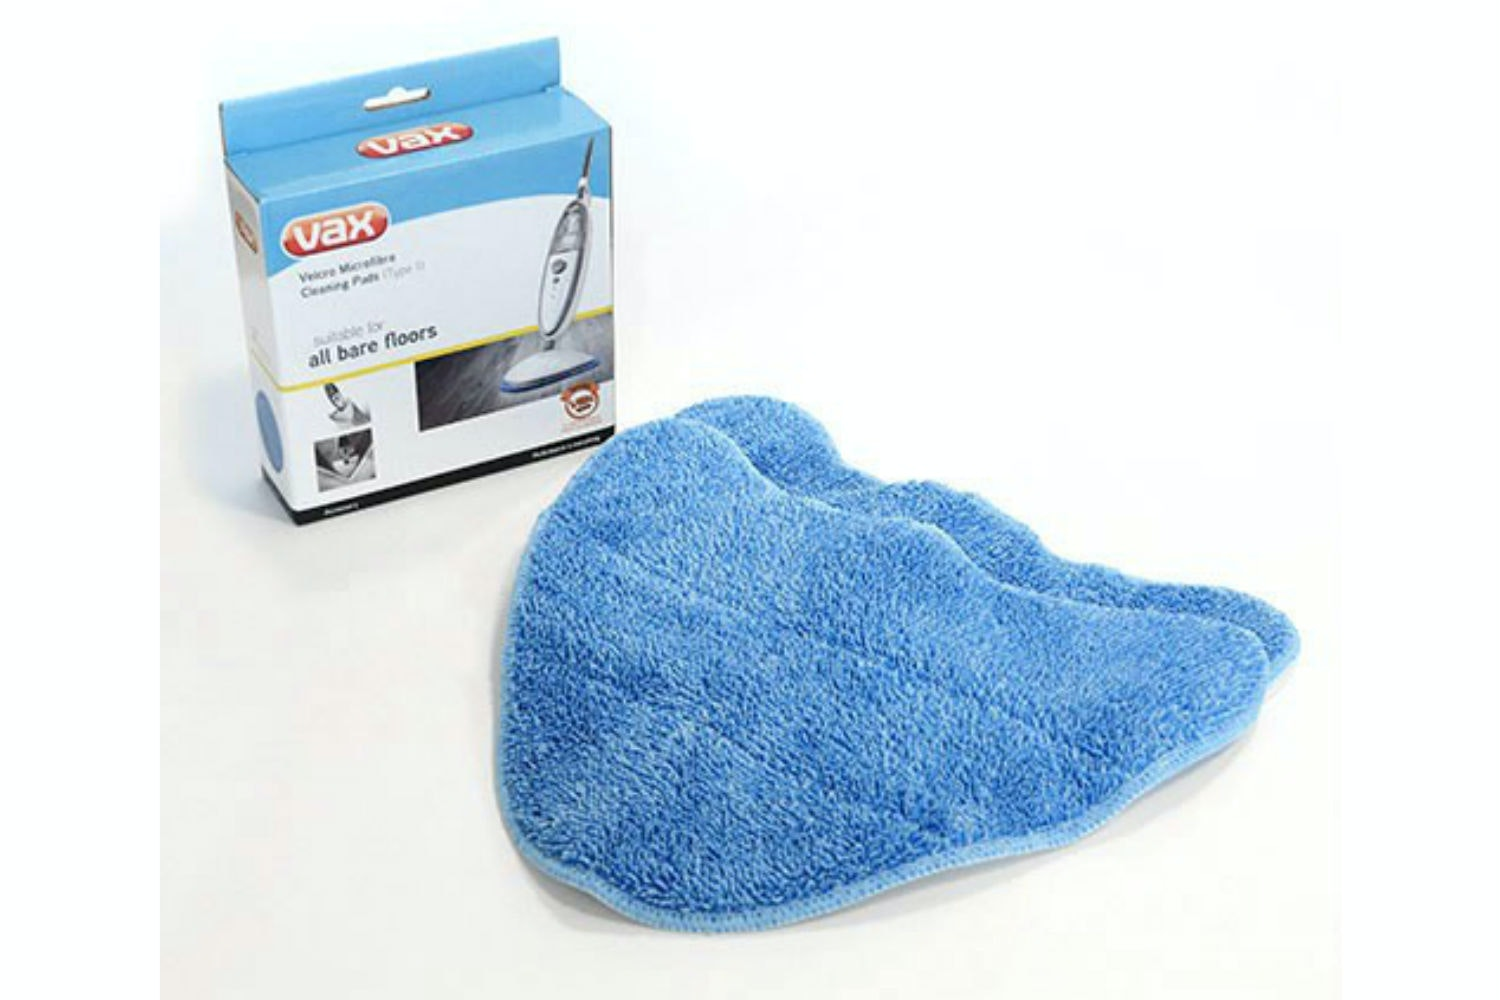 Vax Cleaning Pads